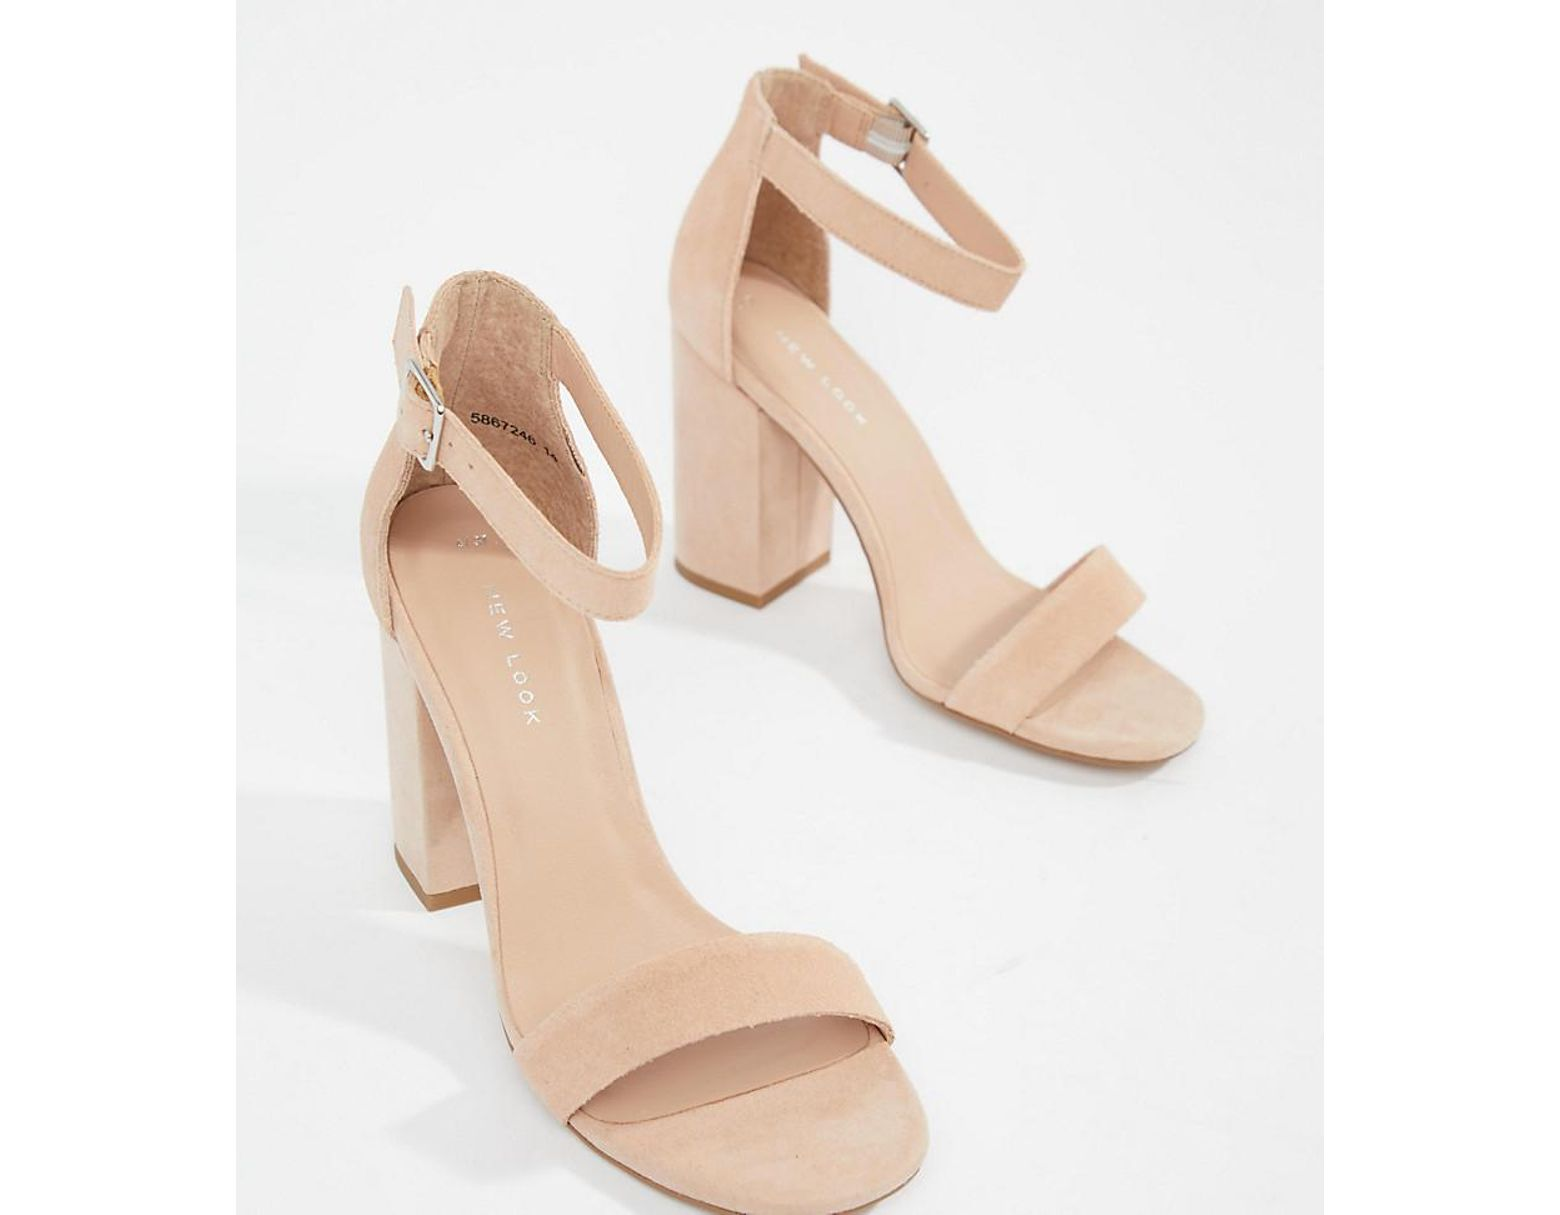 589e71c222 New Look Real Suede Barely There Block Heeled Sandal in Natural - Lyst